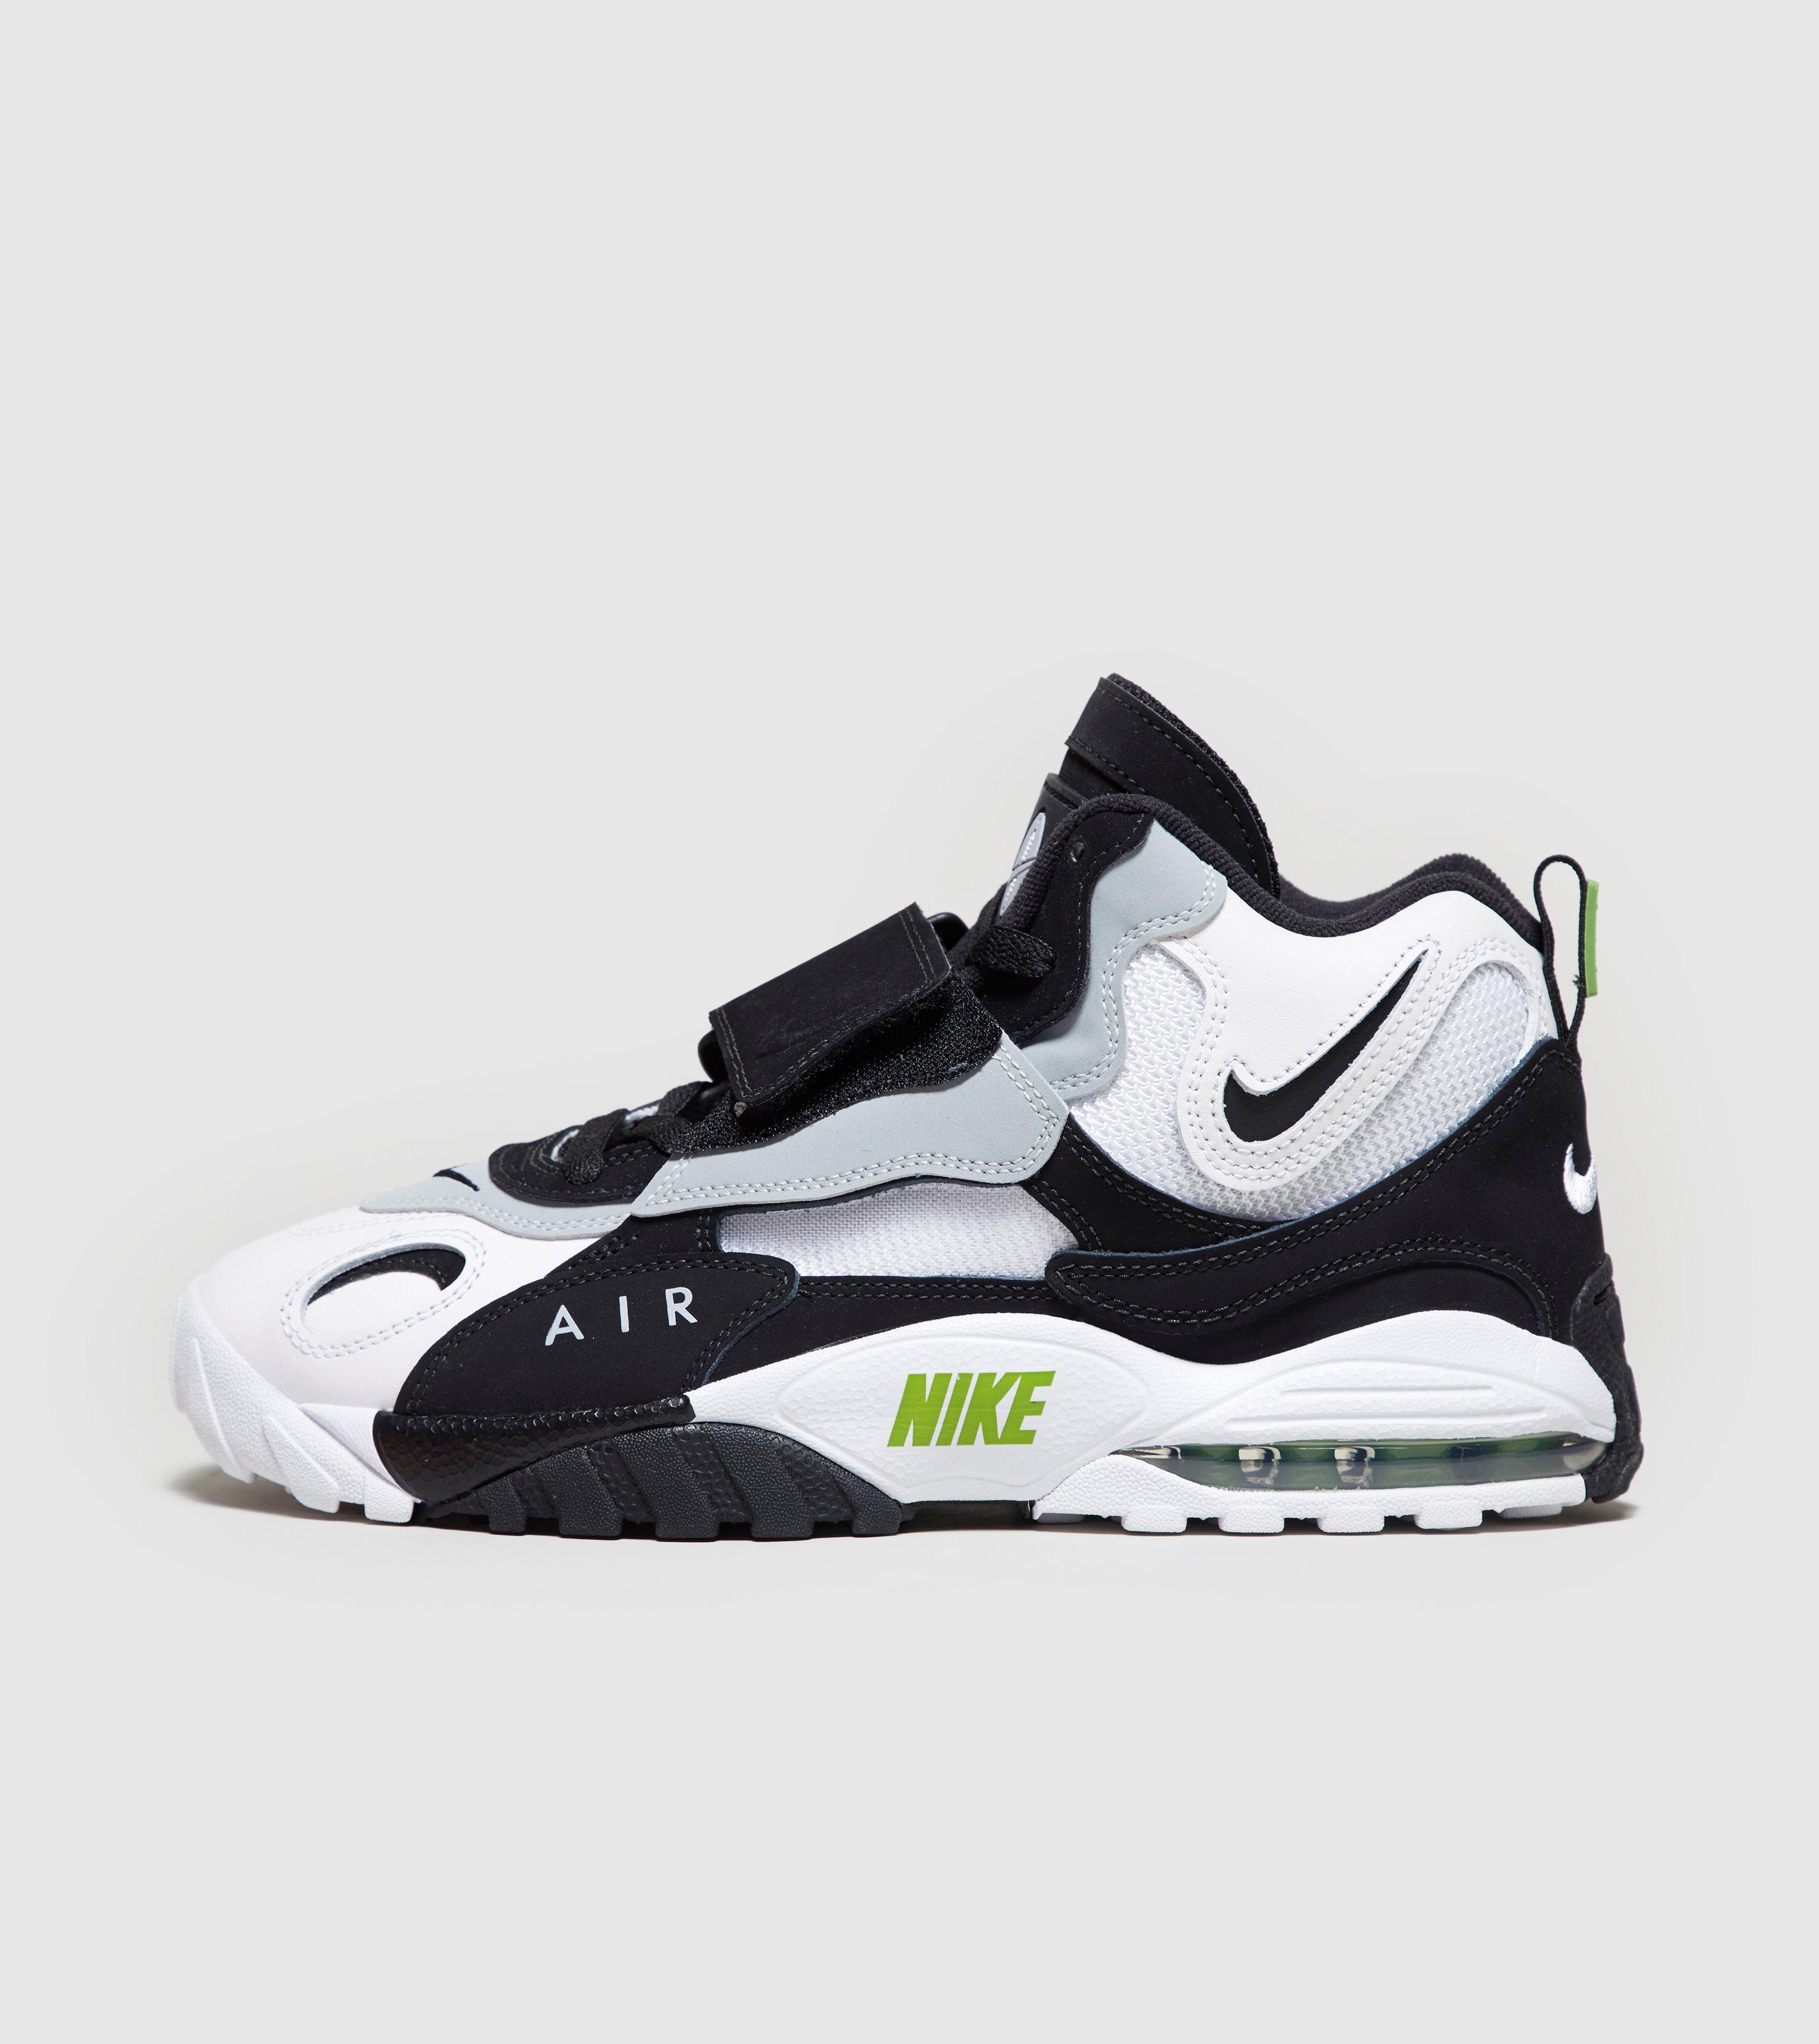 Nike Air Max Speed Turf for Men - Lyst 7854bad5c6